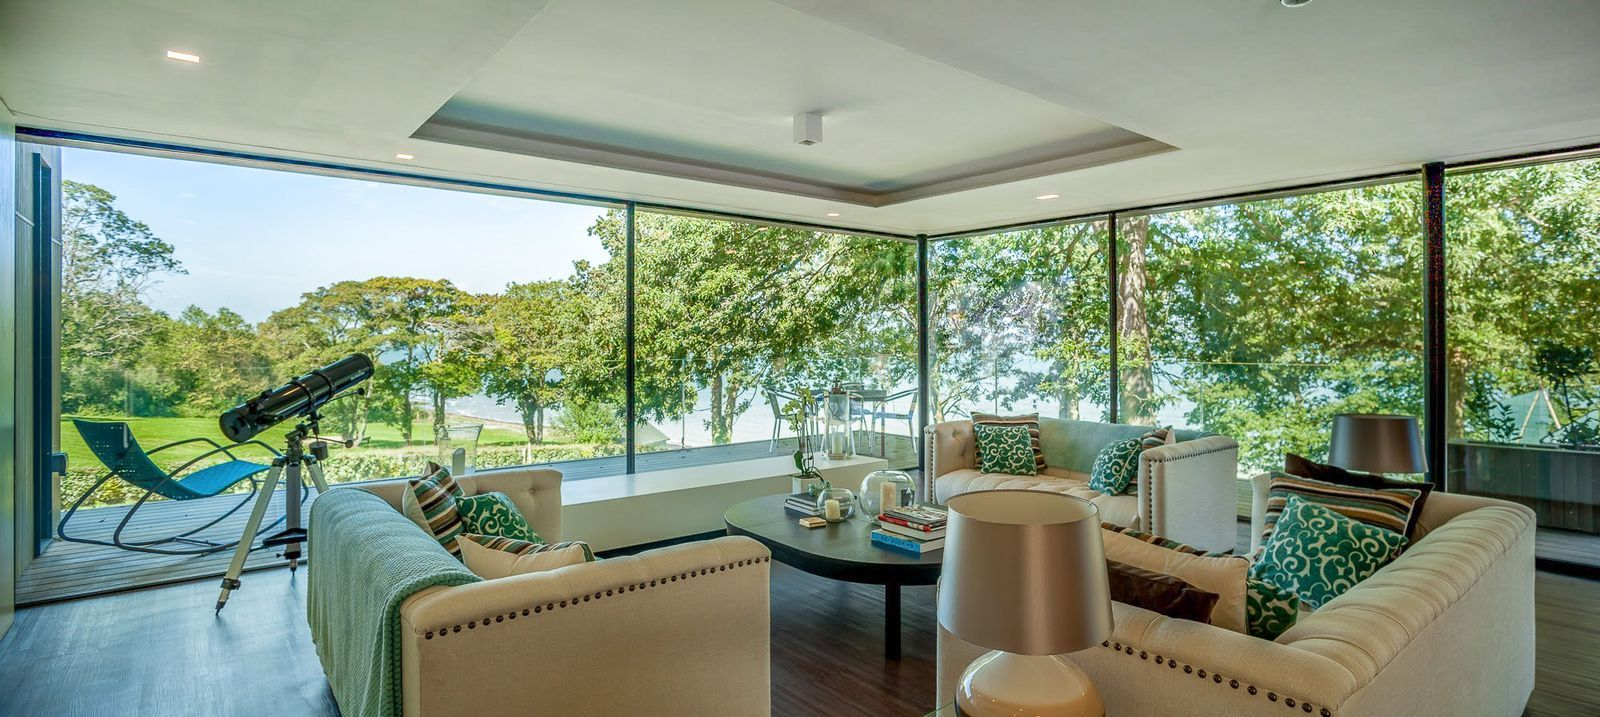 Grand designs  most expensive property also ever is for sale home rh pinterest